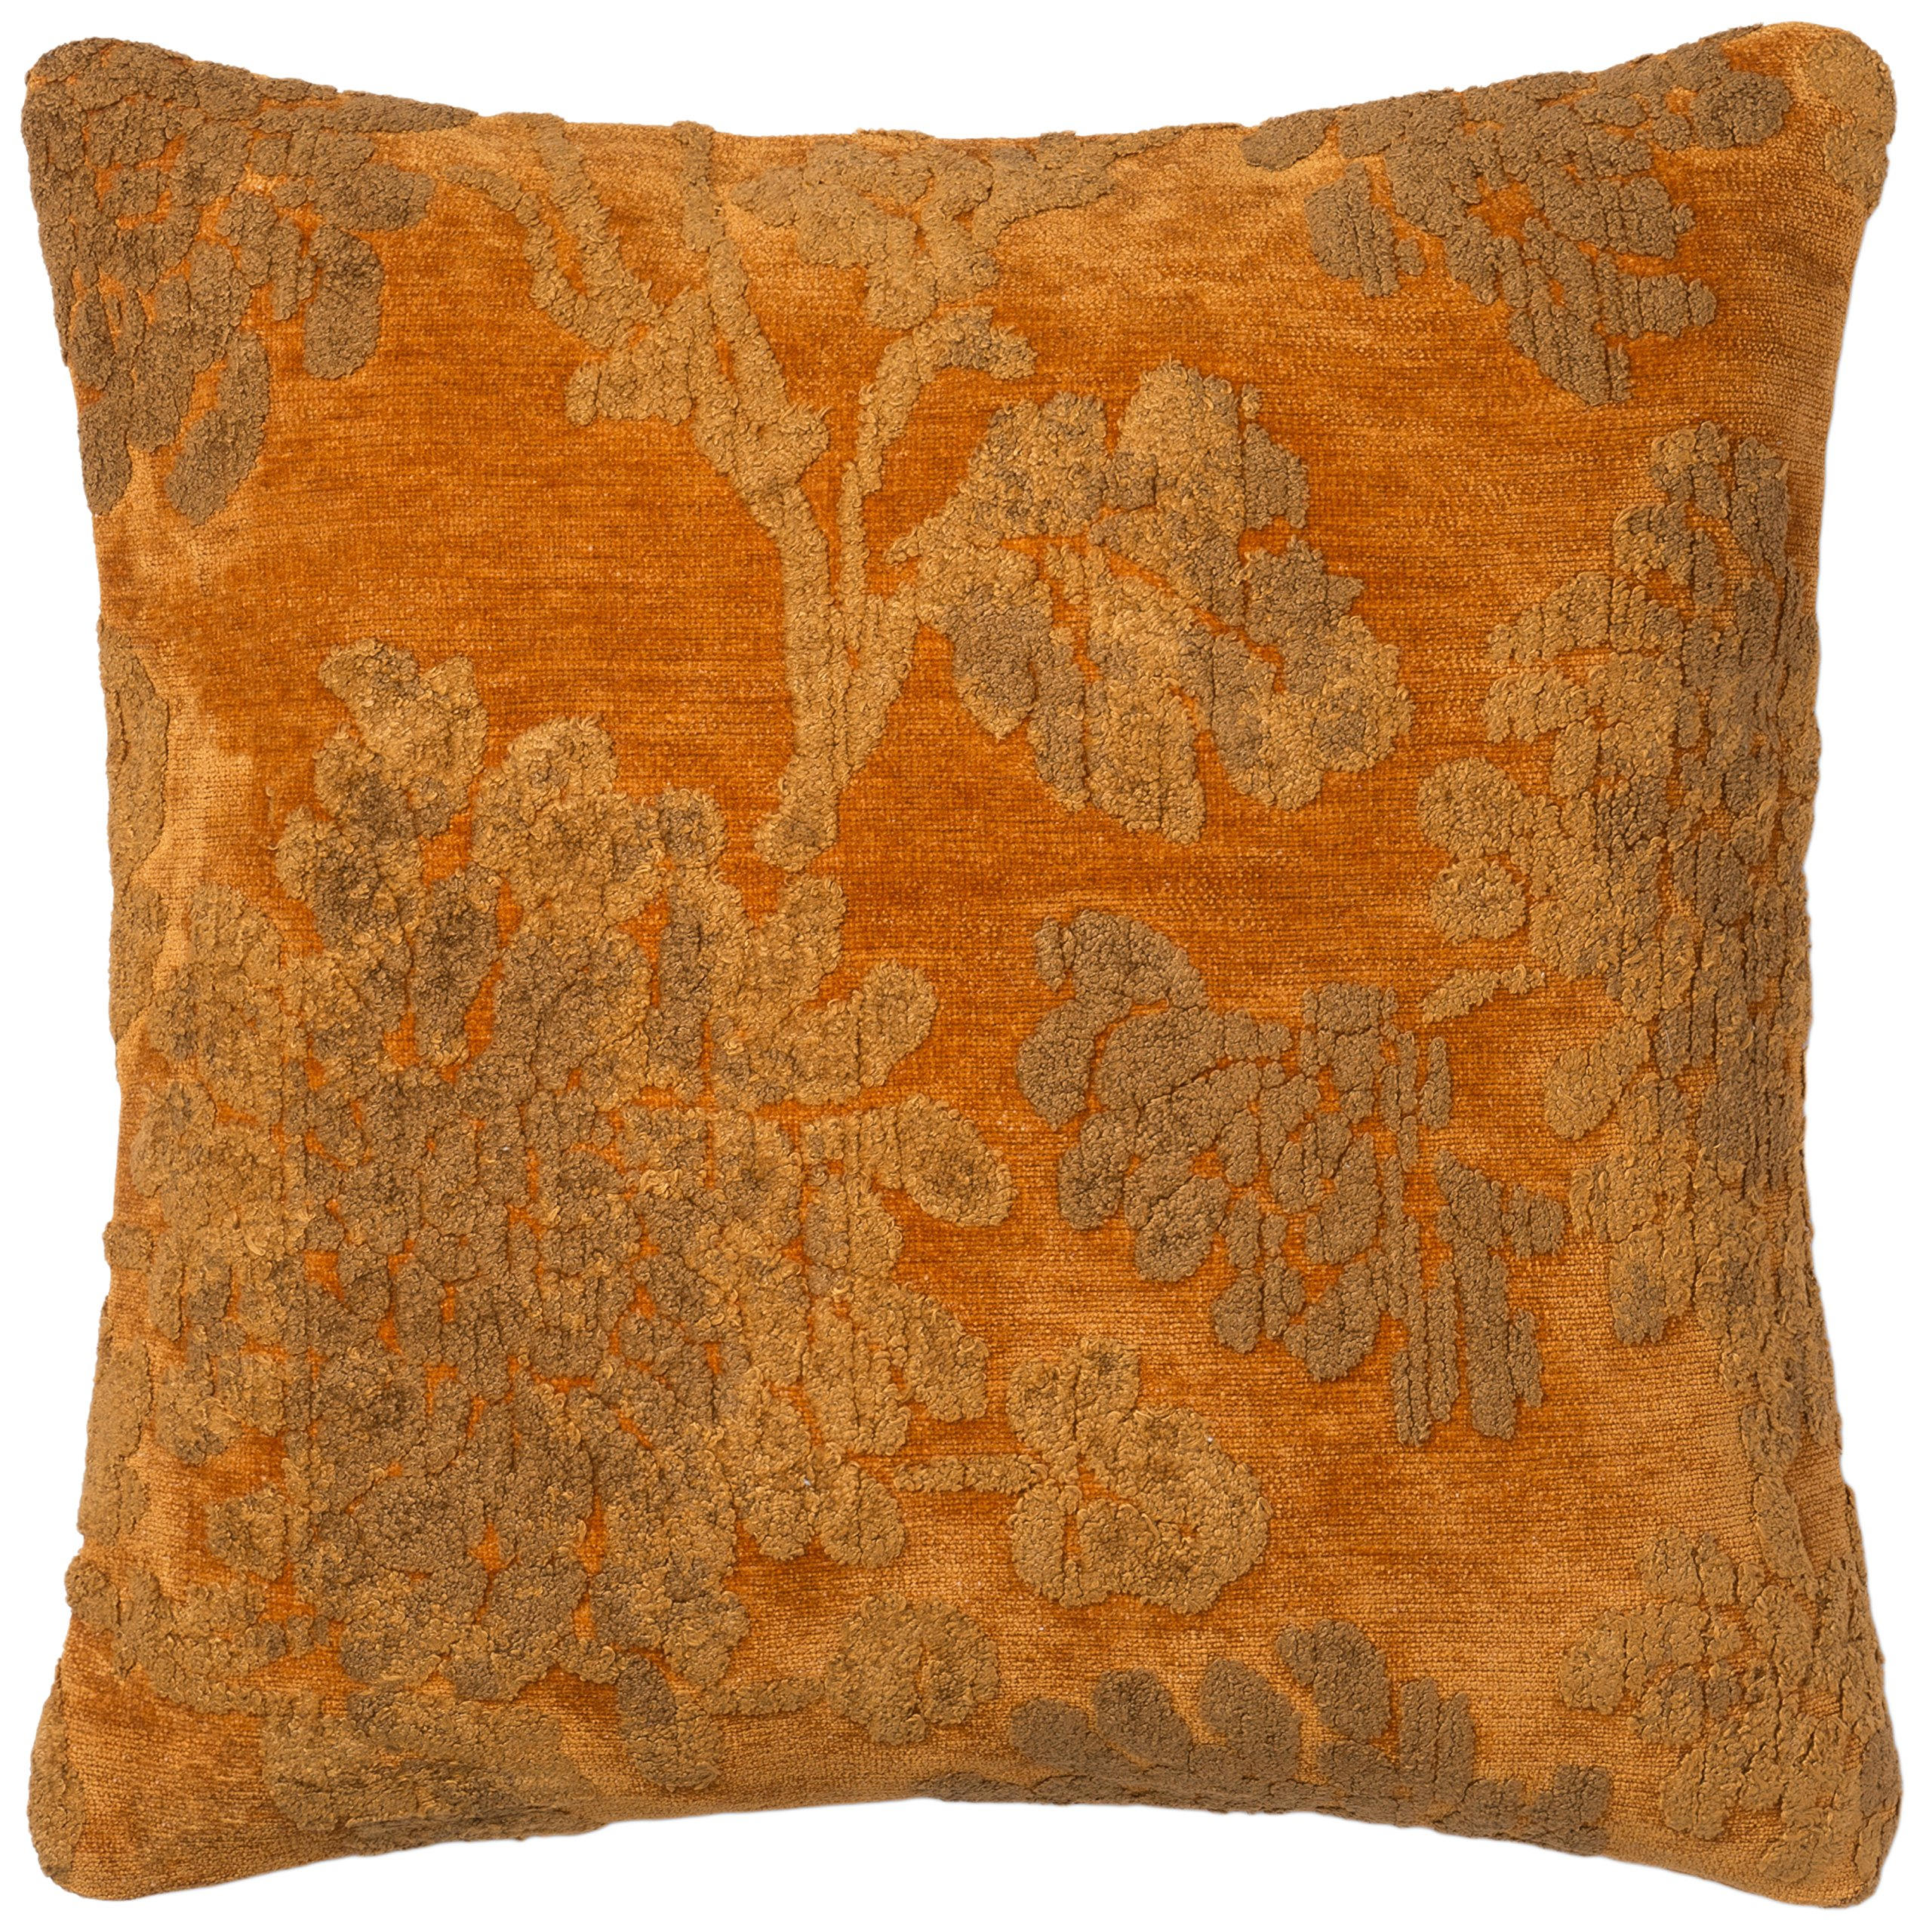 Loloi  Accent  Pillow  DSETGPI13AI00PIL3  Aura  100%  Viscose  with  Down  Fill  22''  x  22'' by Loloi